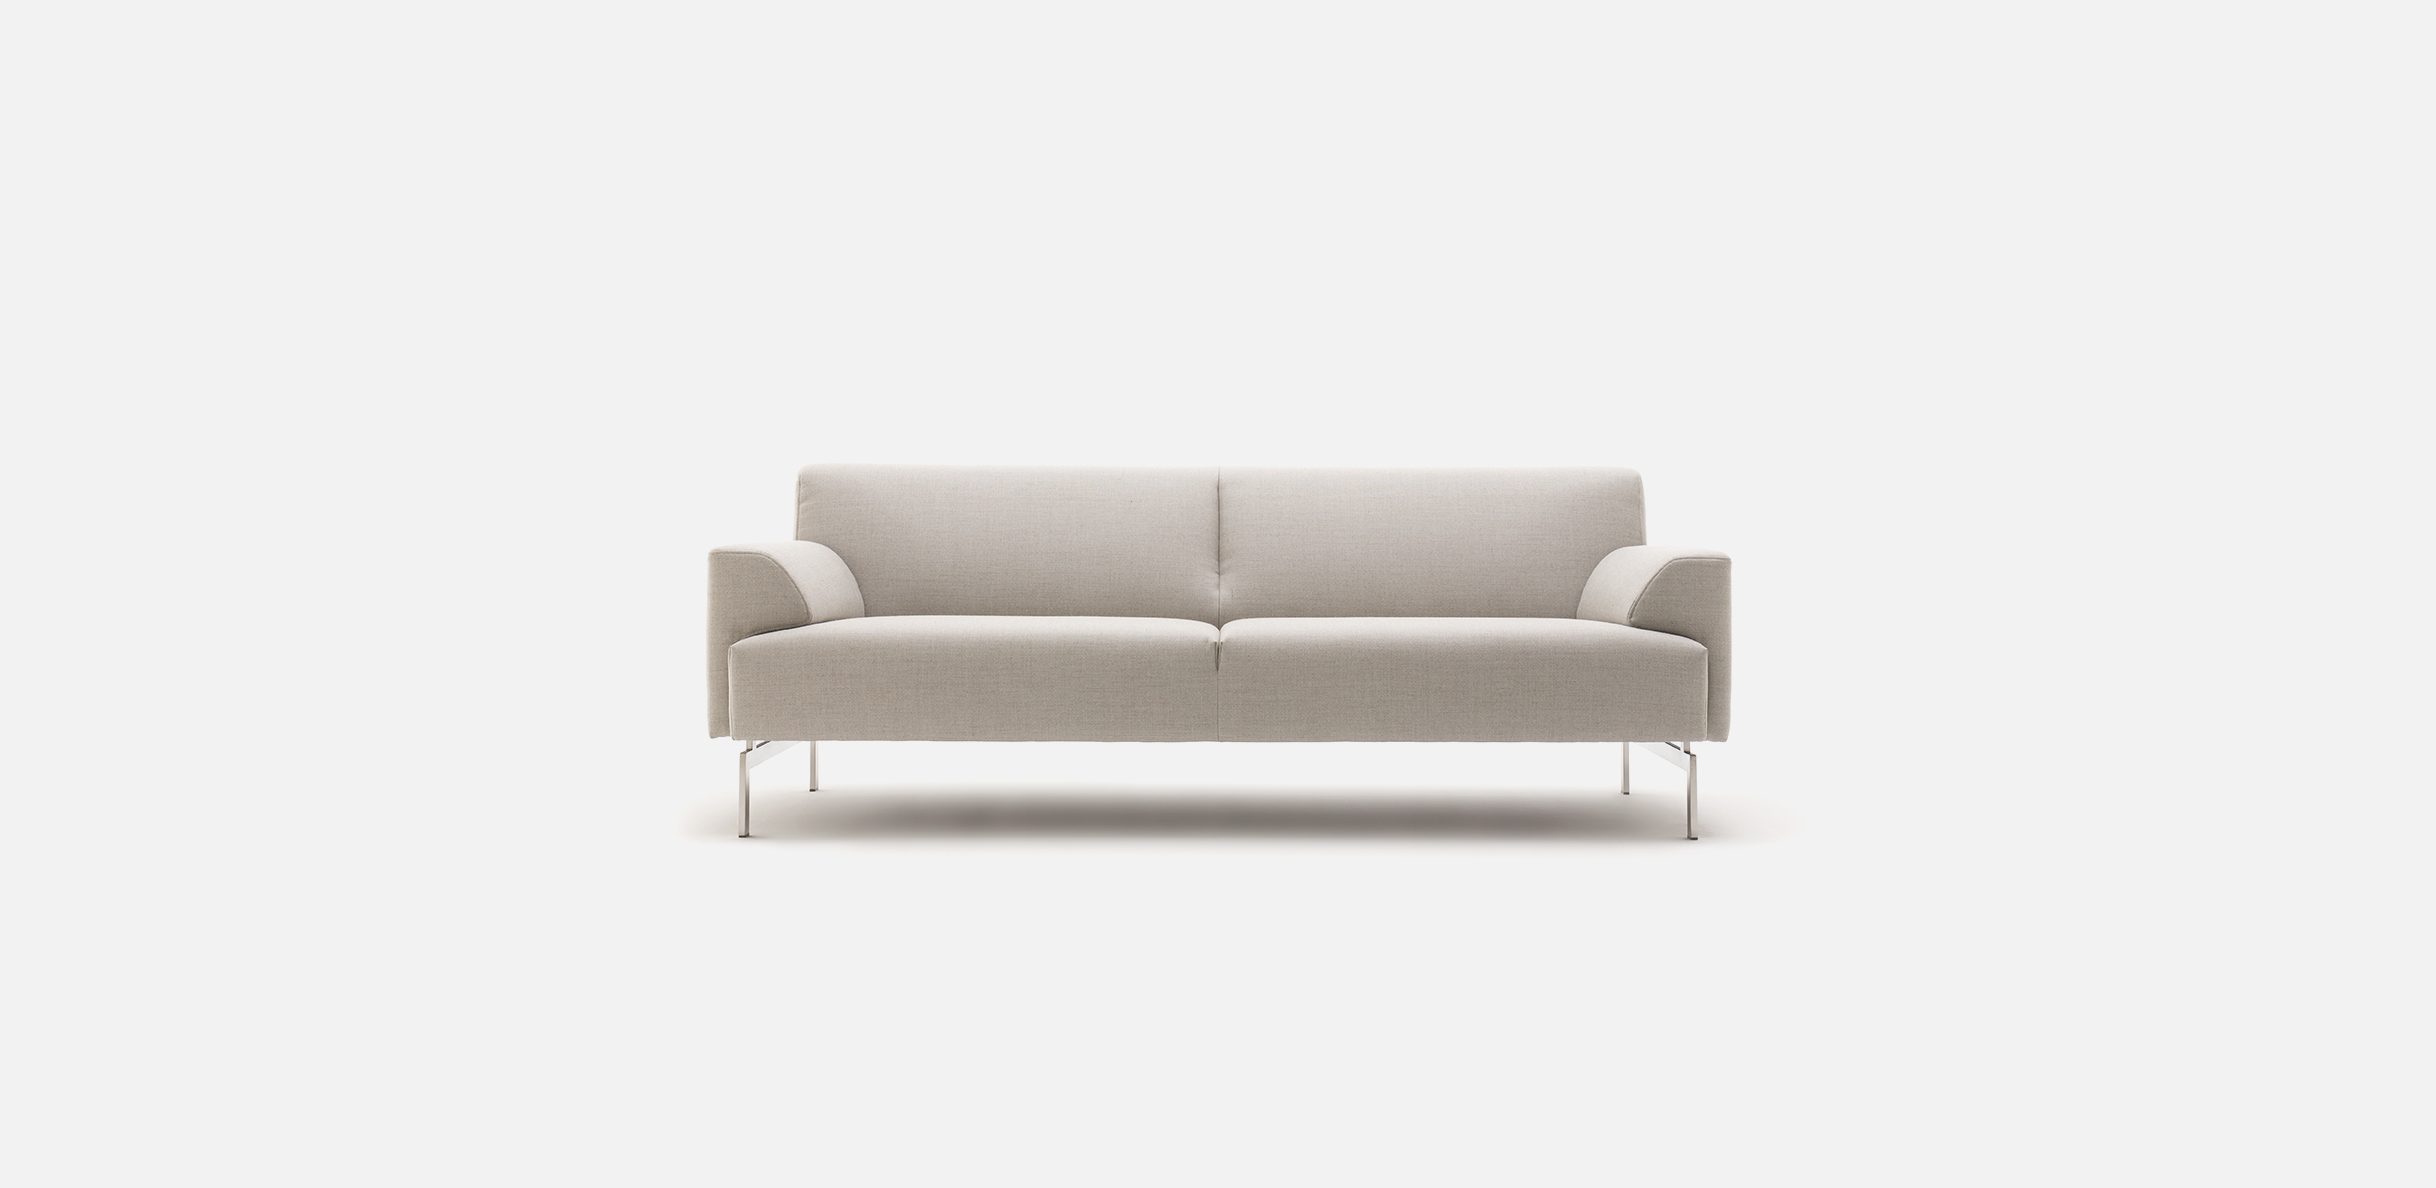 310 - Rolf benz big sofa ...